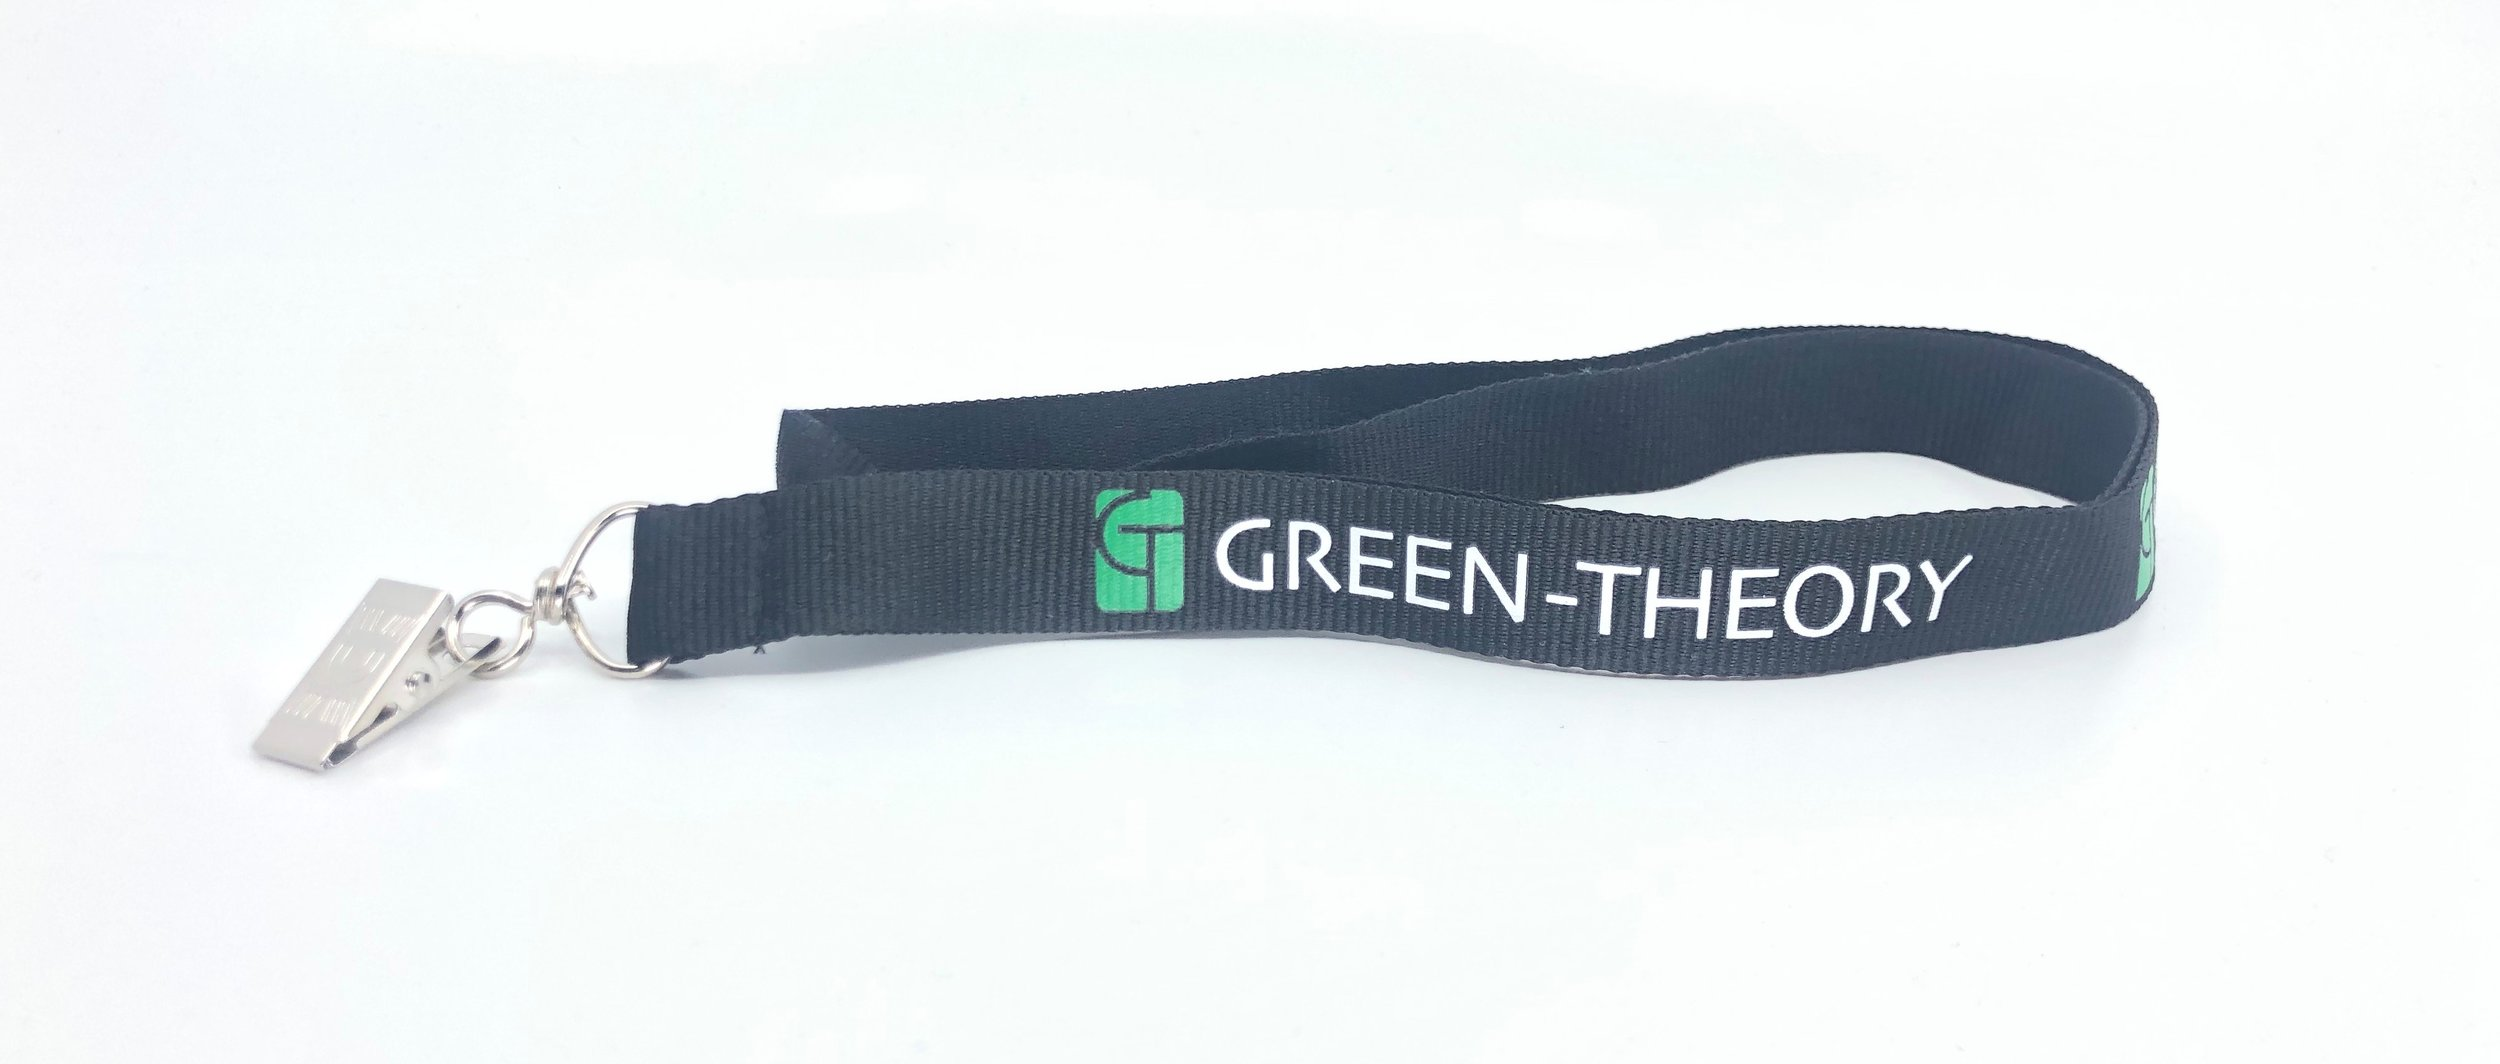 logounltd_laser_etching_embroidery_screen_printing_apparel_uniform_custom_tshirts_t_shirt_kirkland_bellevue_seattle_redmond_woodinville_branded_merchandise_promotional_products_logo_unltd_cannabis_green_theory_lanyard.jpg